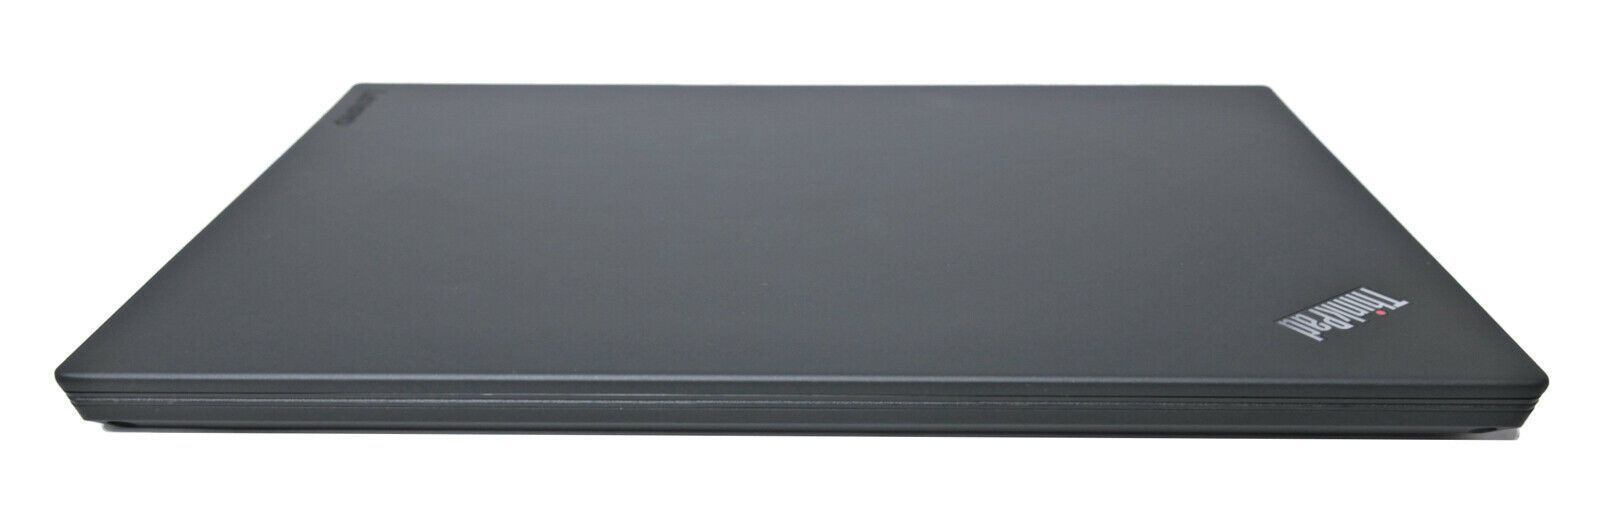 Lenovo Thinkpad T480 FHD IPS Laptop: 256GB SSD, 16GB RAM, 2022 Warranty - CruiseTech